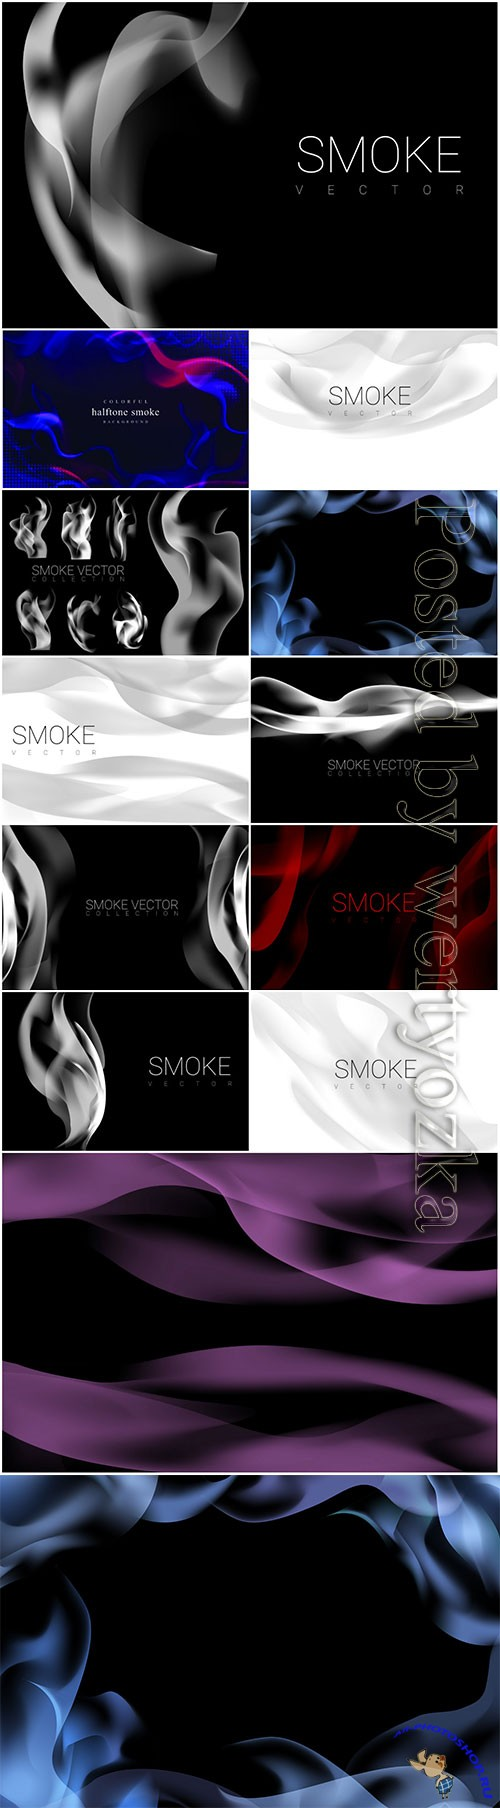 Set of smoke vector background